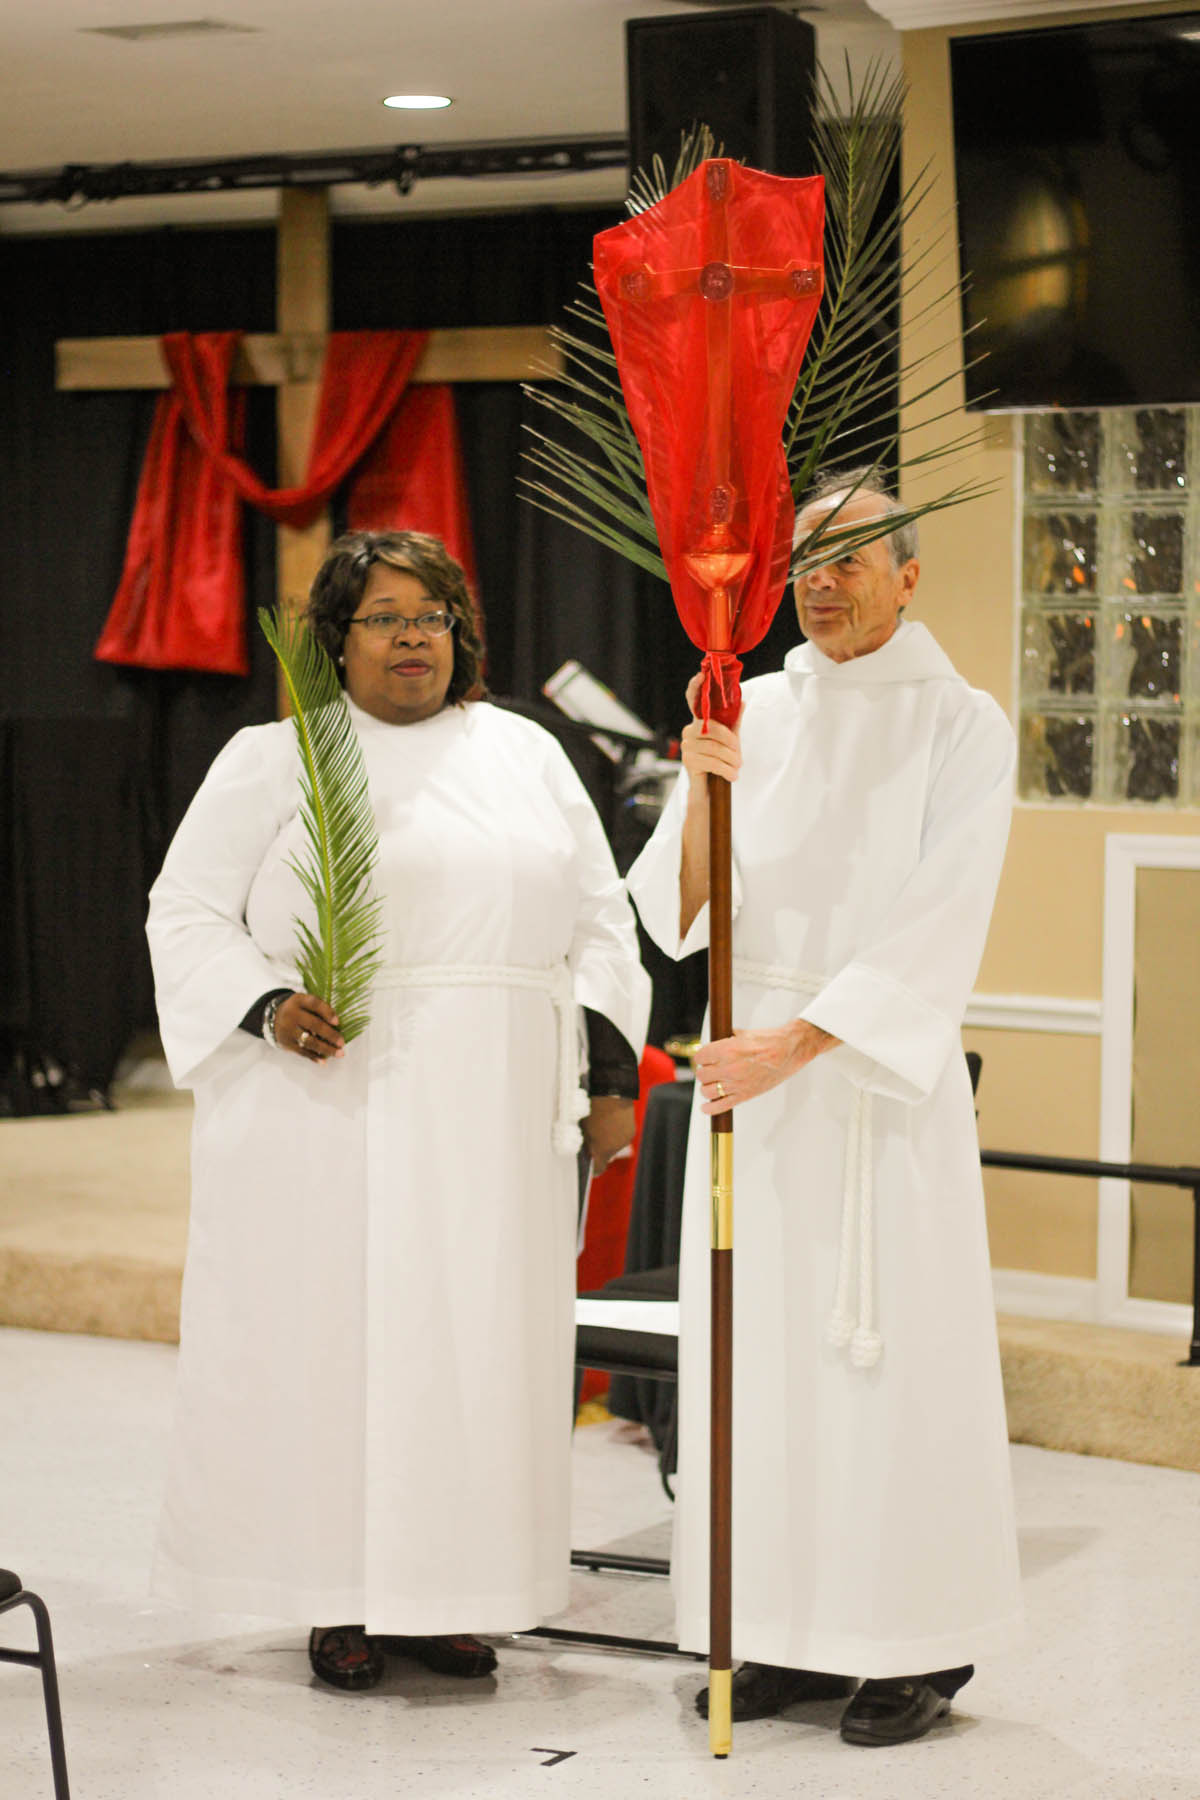 2019-04-14-WCEC-Palm-Sunday-048